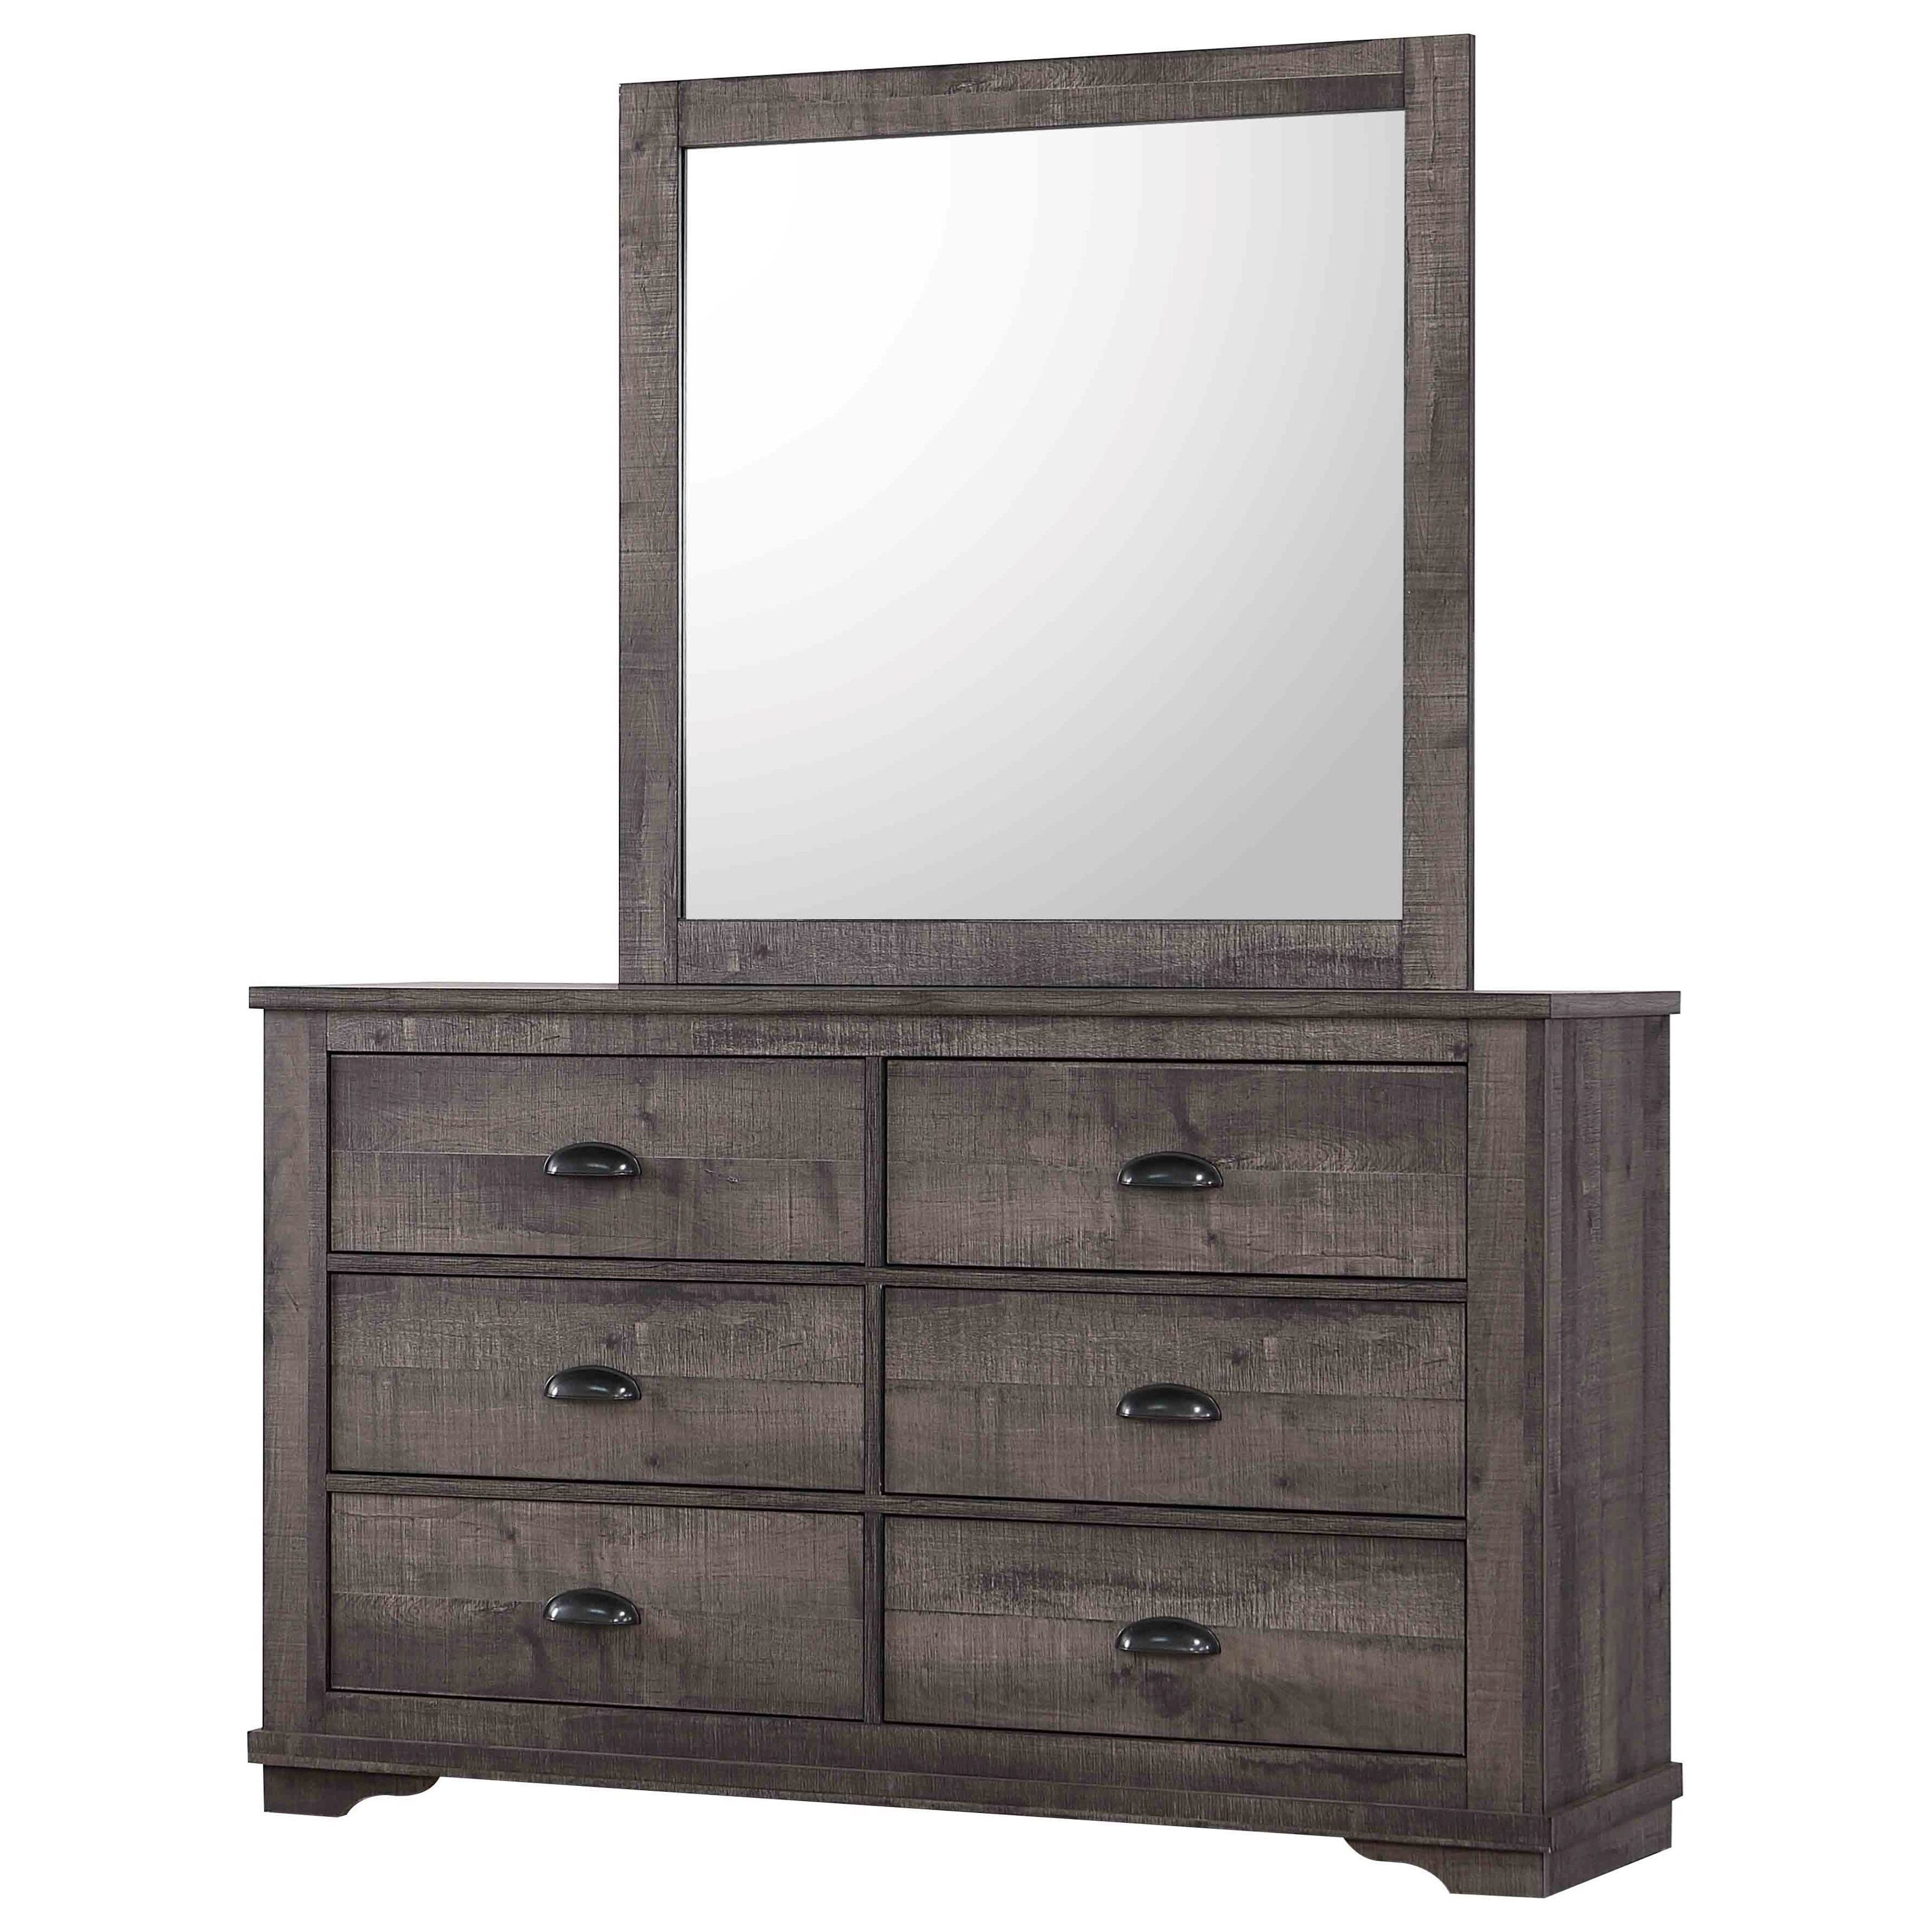 Coralee Dresser and Mirror by Crown Mark at Northeast Factory Direct